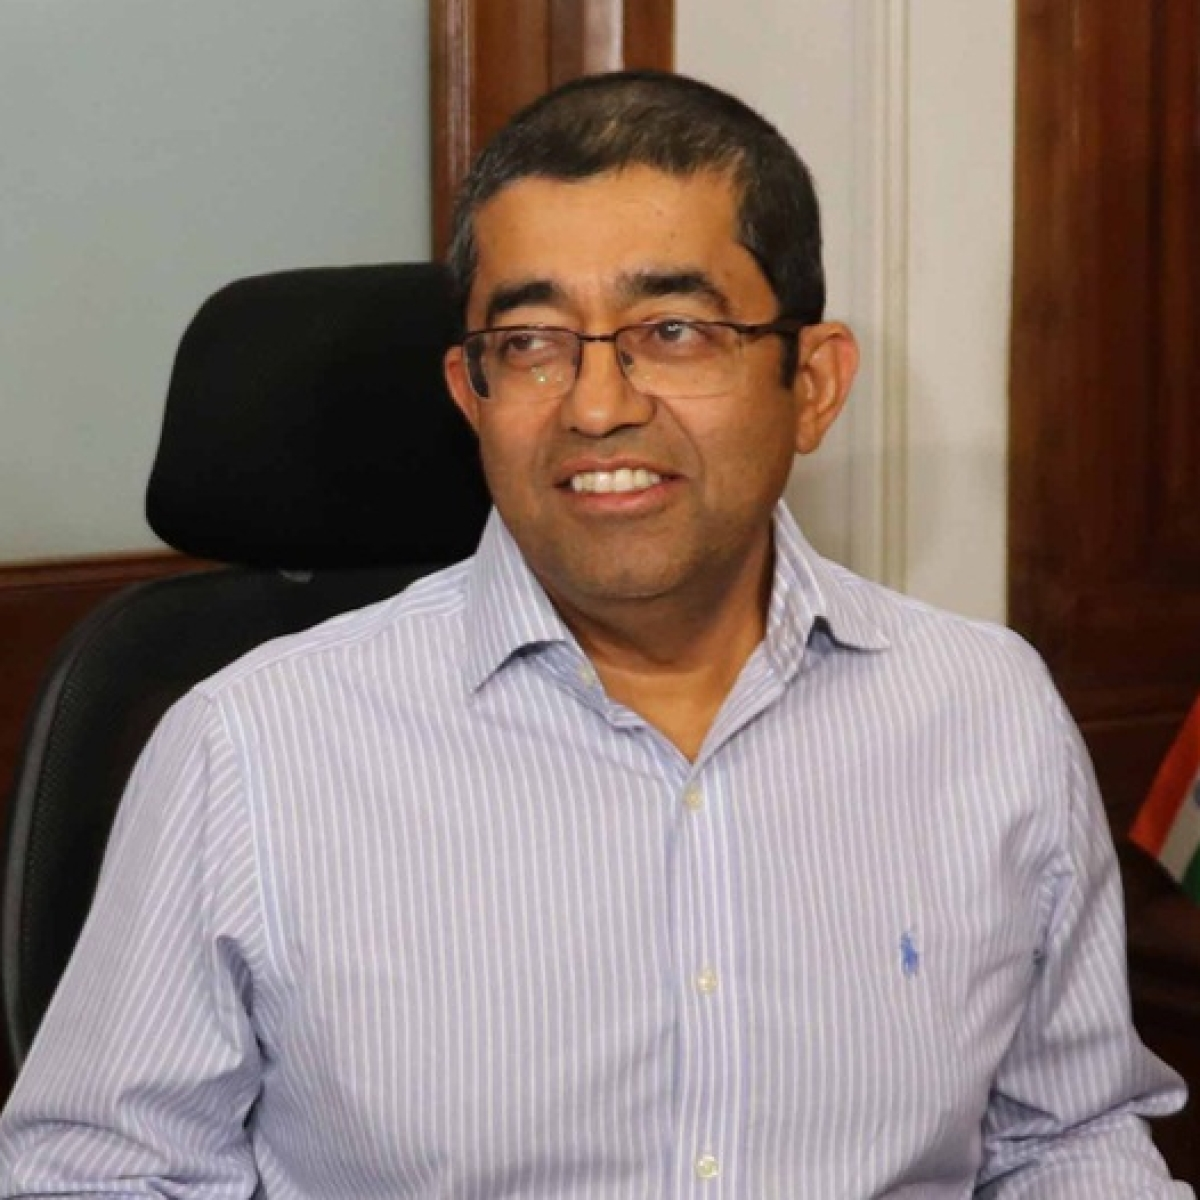 Private, public companies will allow only 50% of their staff to attend office: BMC chief